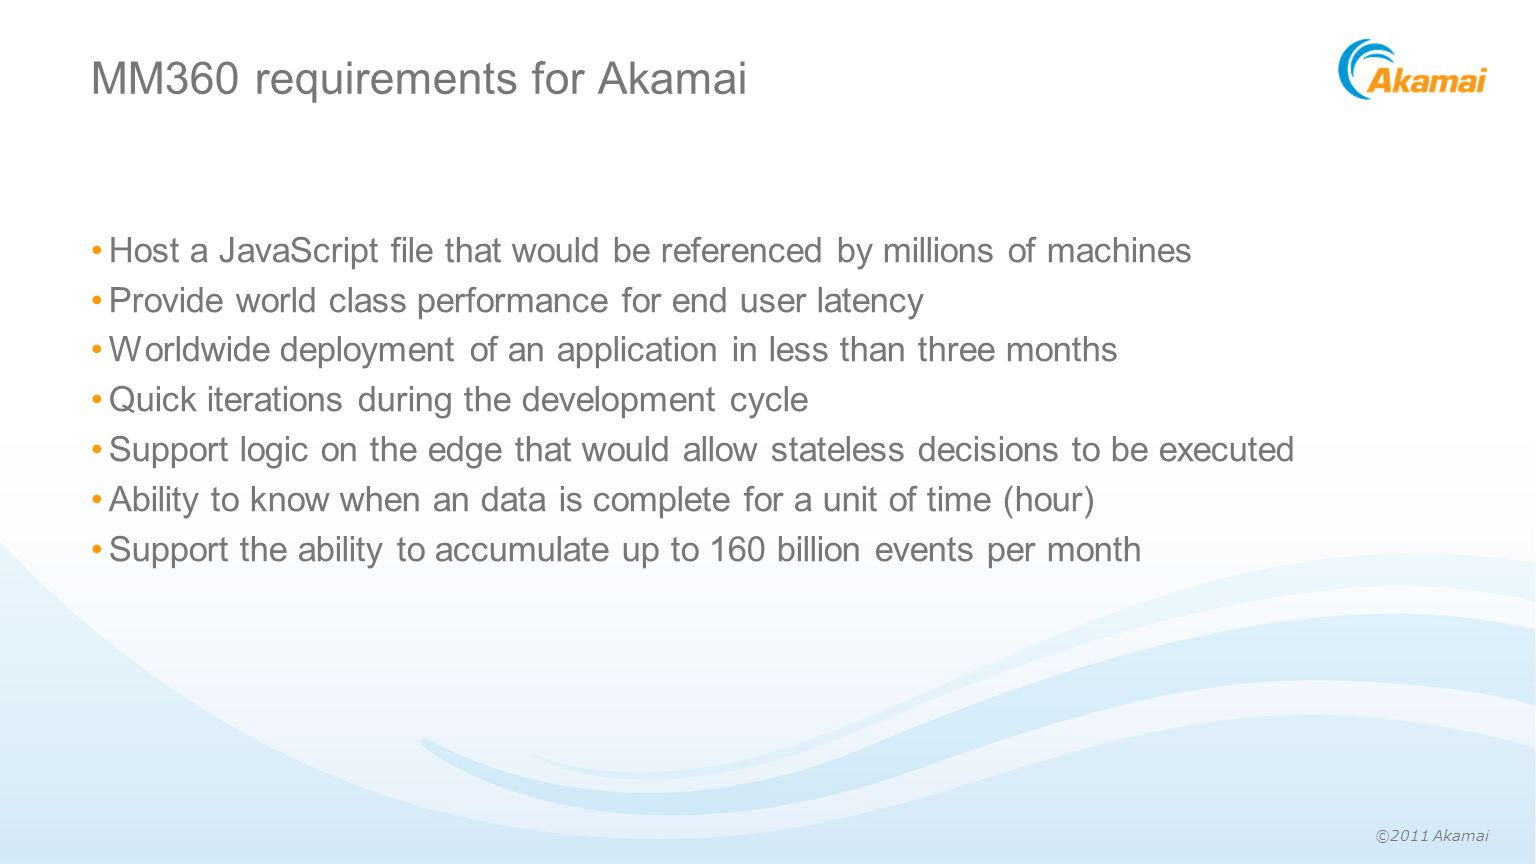 ©2011 Akamai MM360 requirements for Akamai Host a JavaScript file that would be referenced by millions of machines Provide world class performance for end user latency Worldwide deployment of an application in less than three months Quick iterations during the development cycle Support logic on the edge that would allow stateless decisions to be executed Ability to know when an data is complete for a unit of time (hour) Support the ability to accumulate up to 160 billion events per month